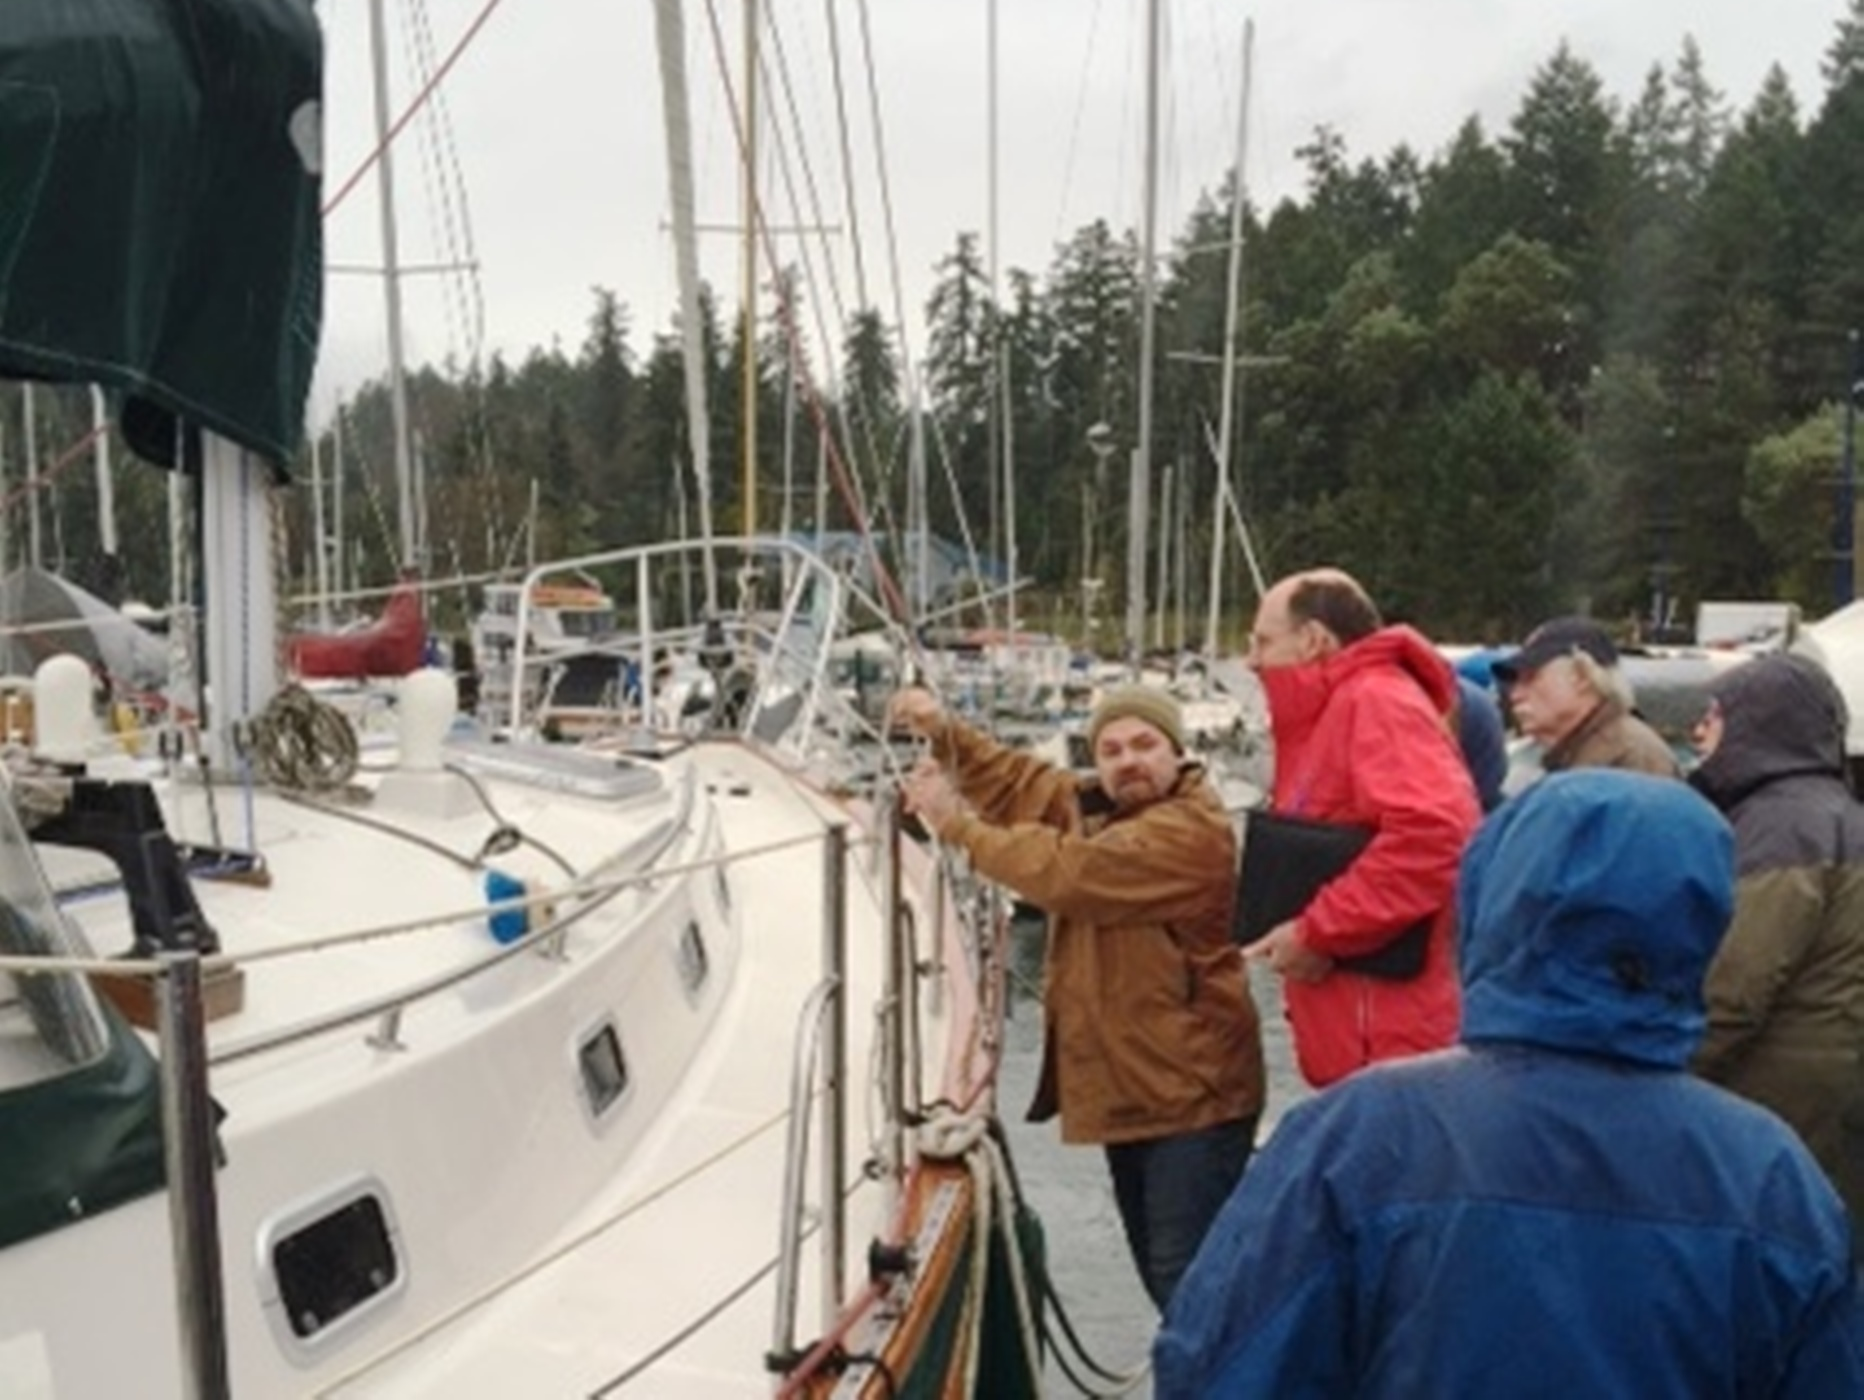 In blustery rain, Fleet members learned how to inspect standing rigging.